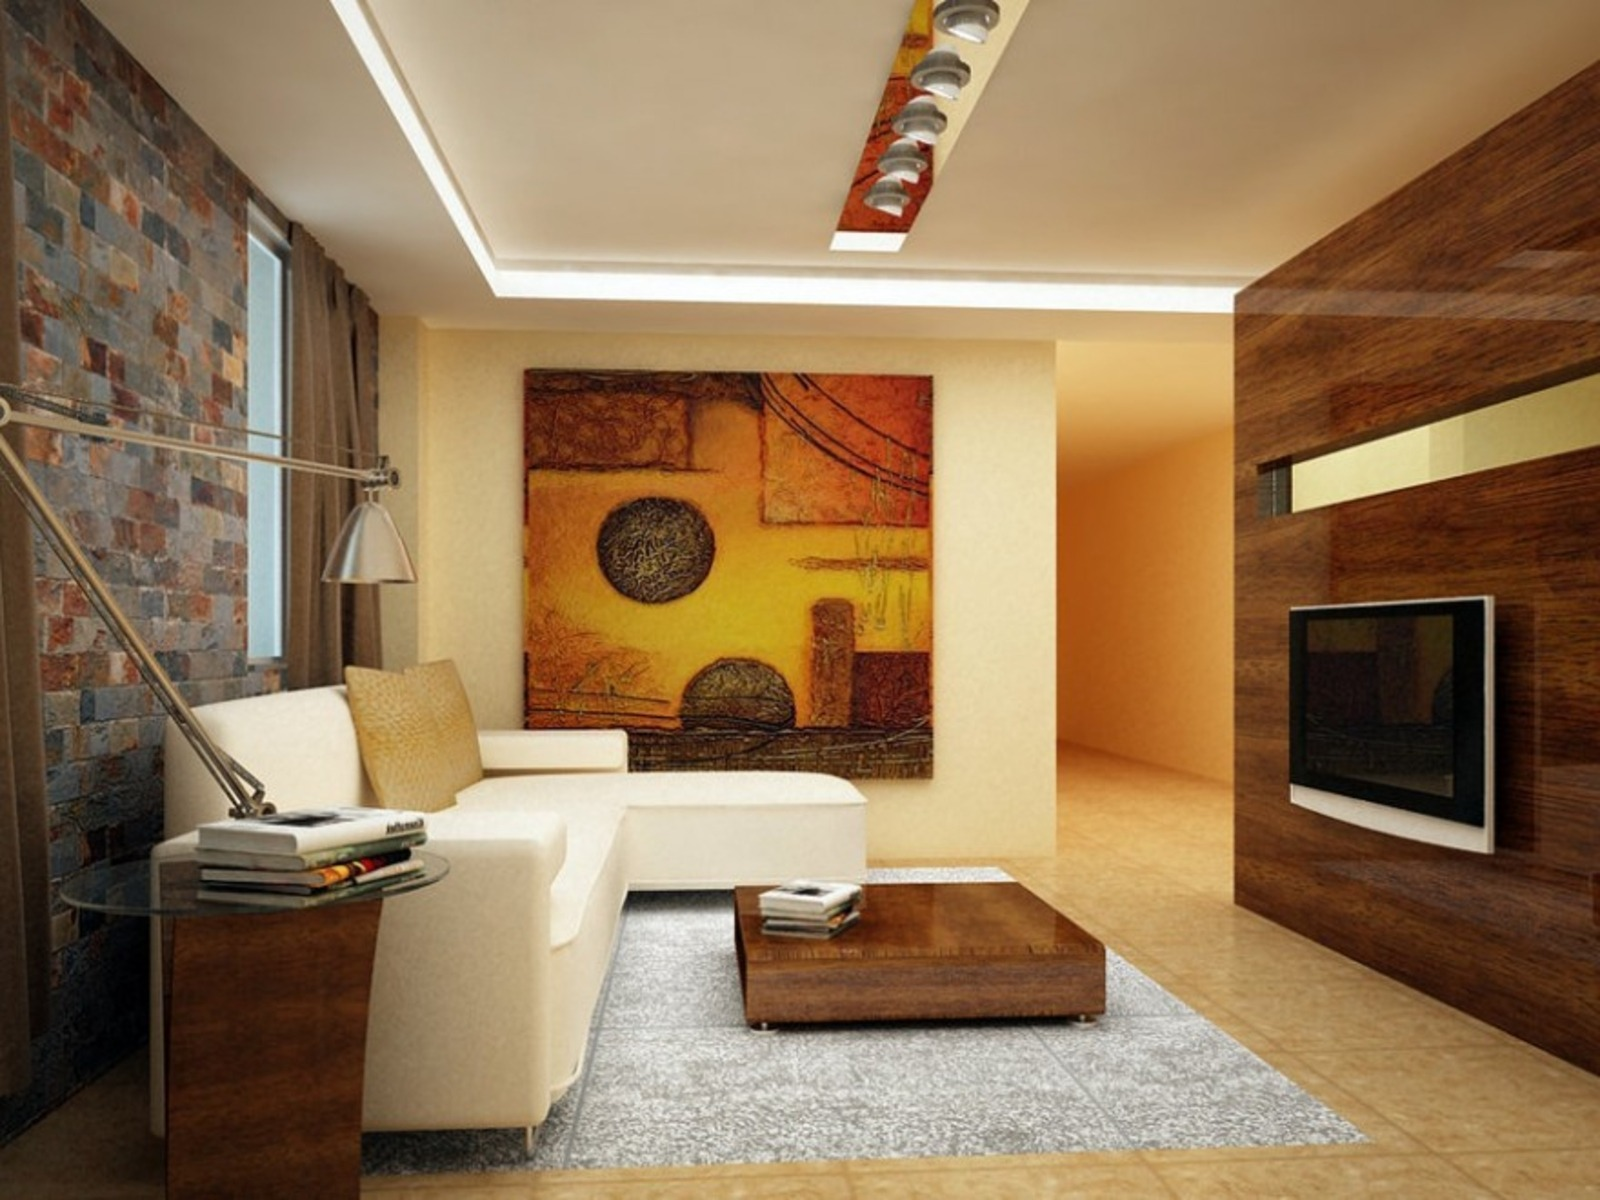 14 amazing living room designs indian style interior and - Interior living room design ideas ...